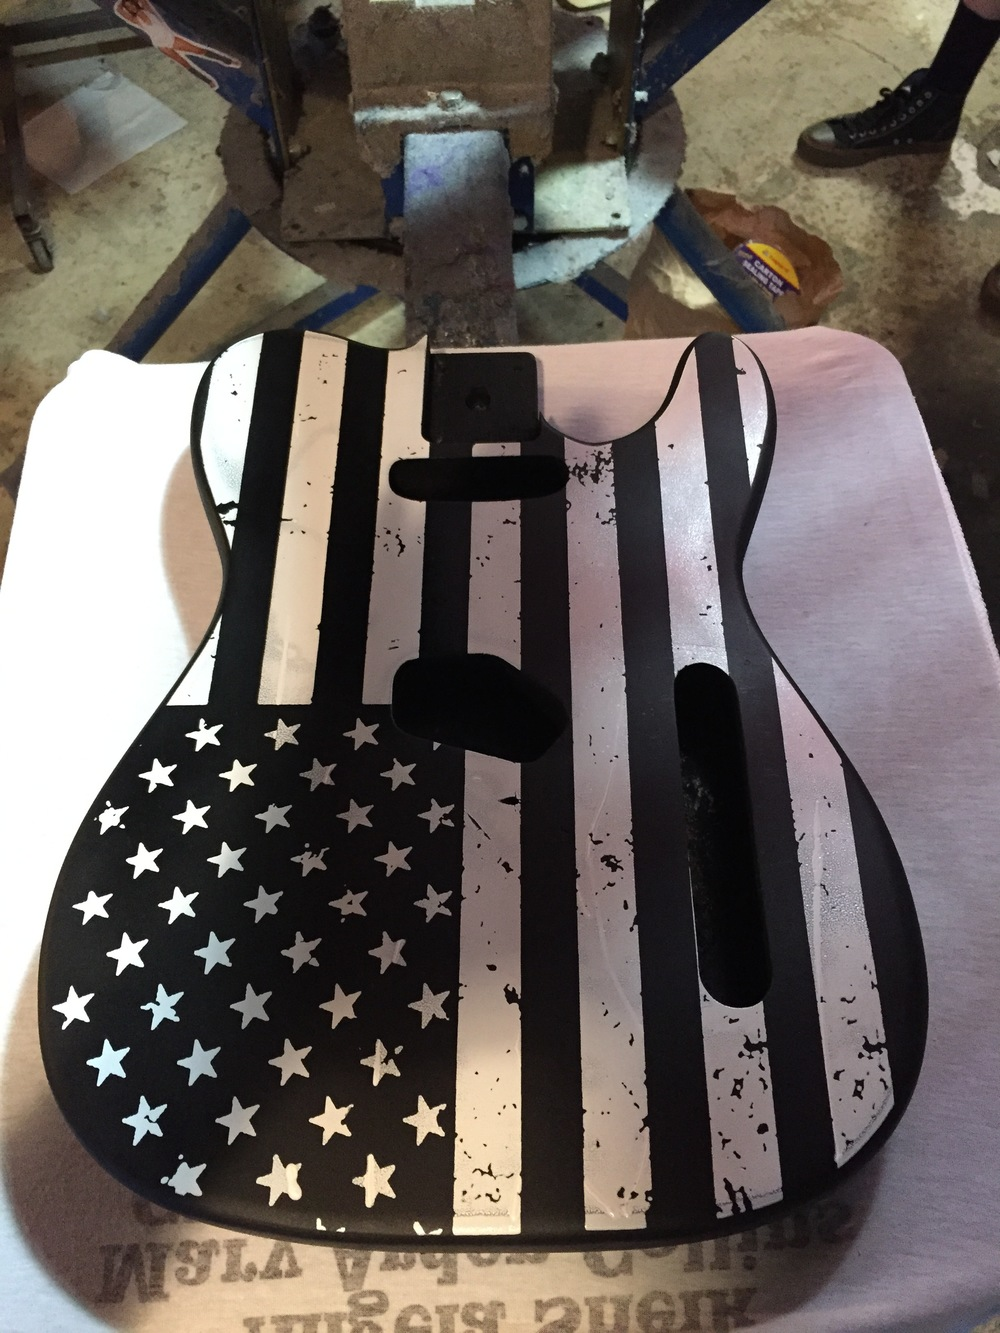 Screen print on wooden guitar body. Project I did with my friends at Matt  y Crist Guitar Works.